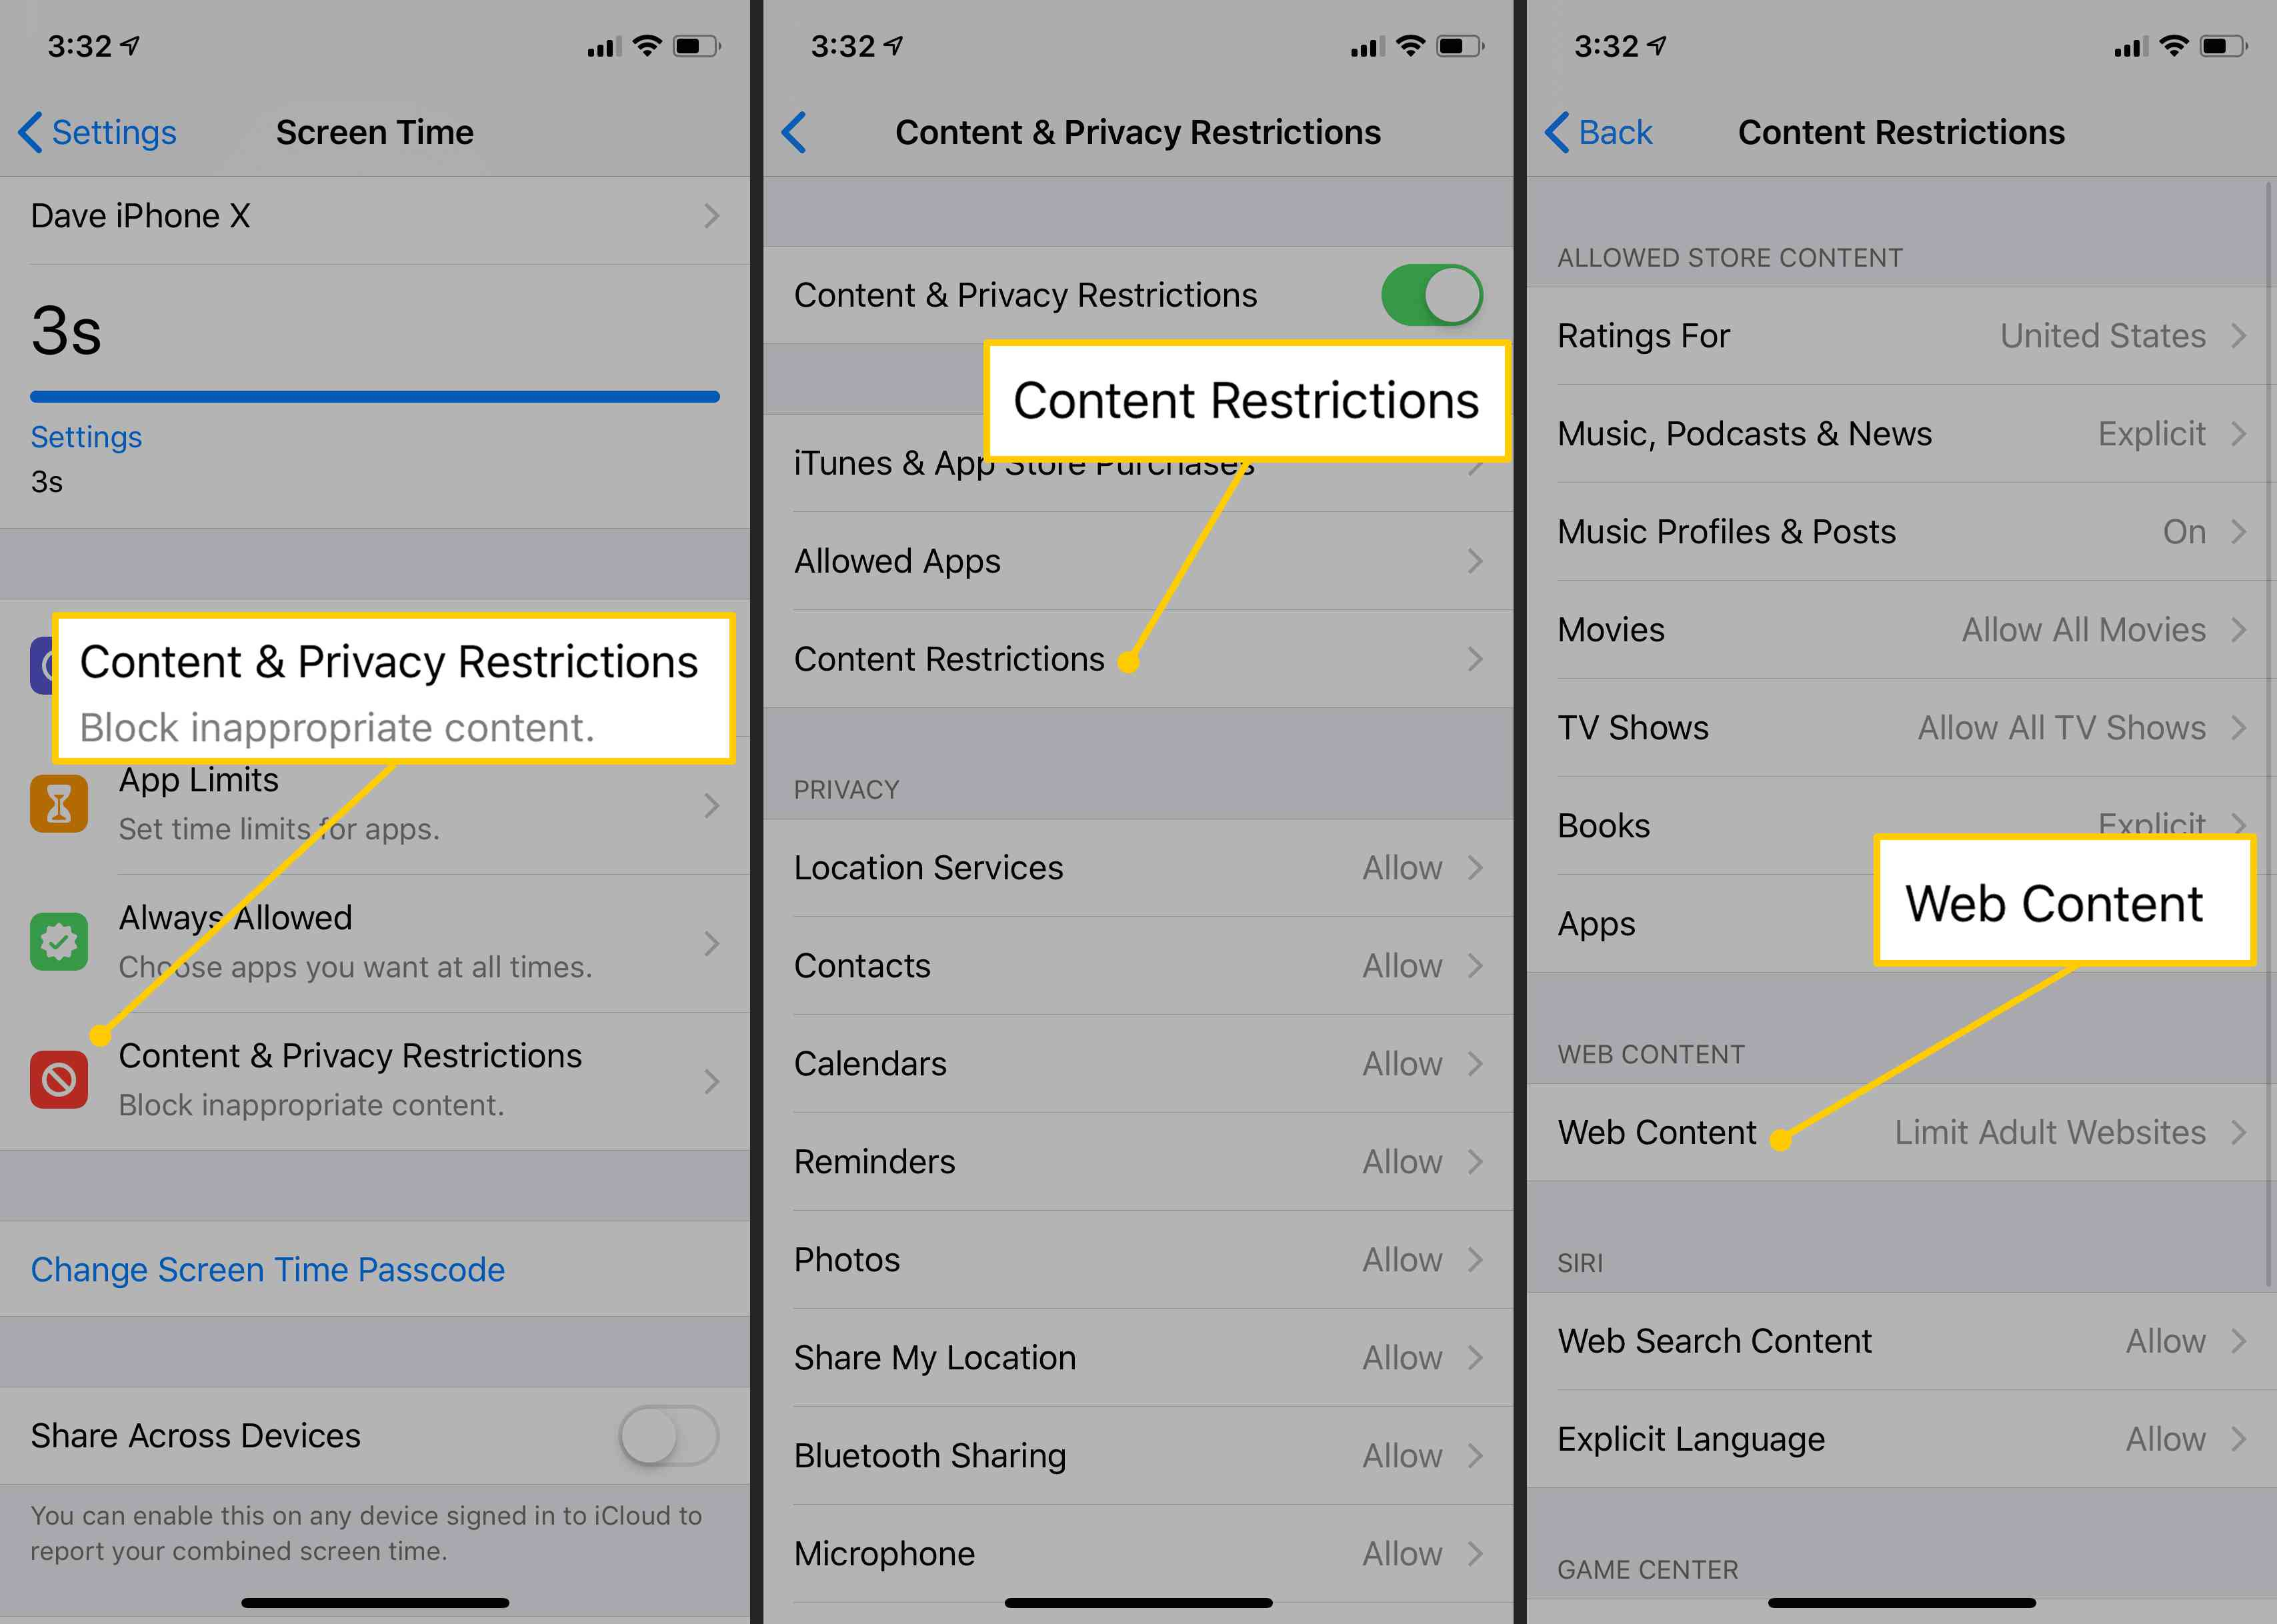 Content & Privacy Restrictions, Content Restrictions, Web Content on iOS